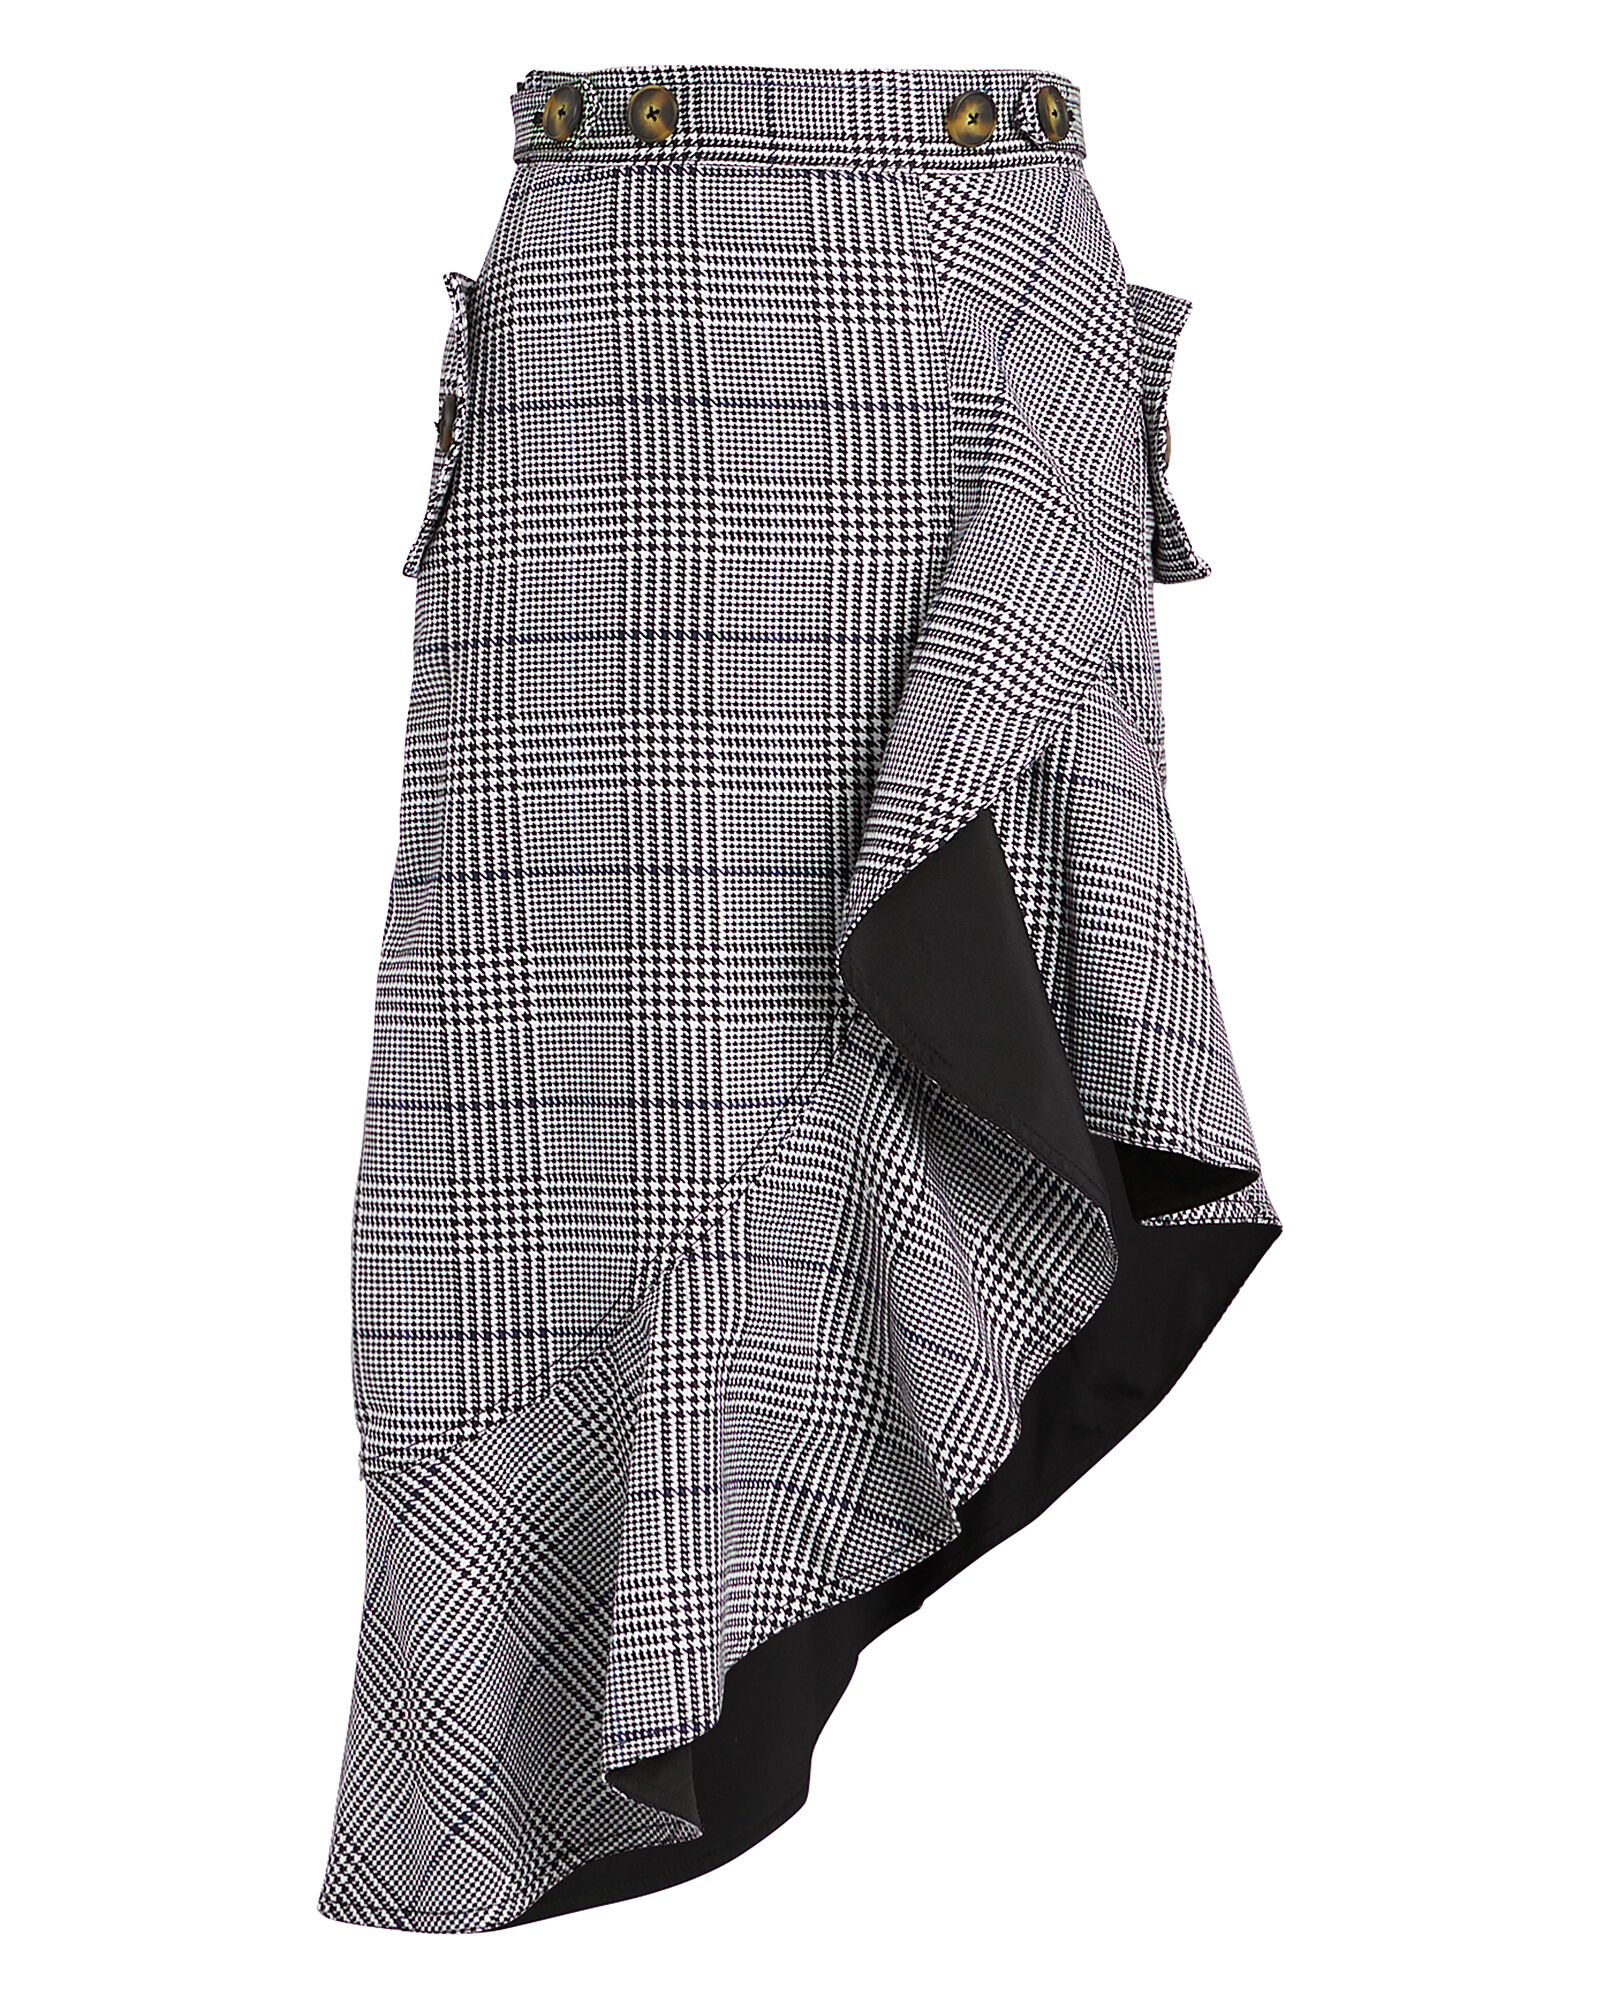 Ruffled Plaid Asymmetric Skirt, GREY/PLAID, hi-res